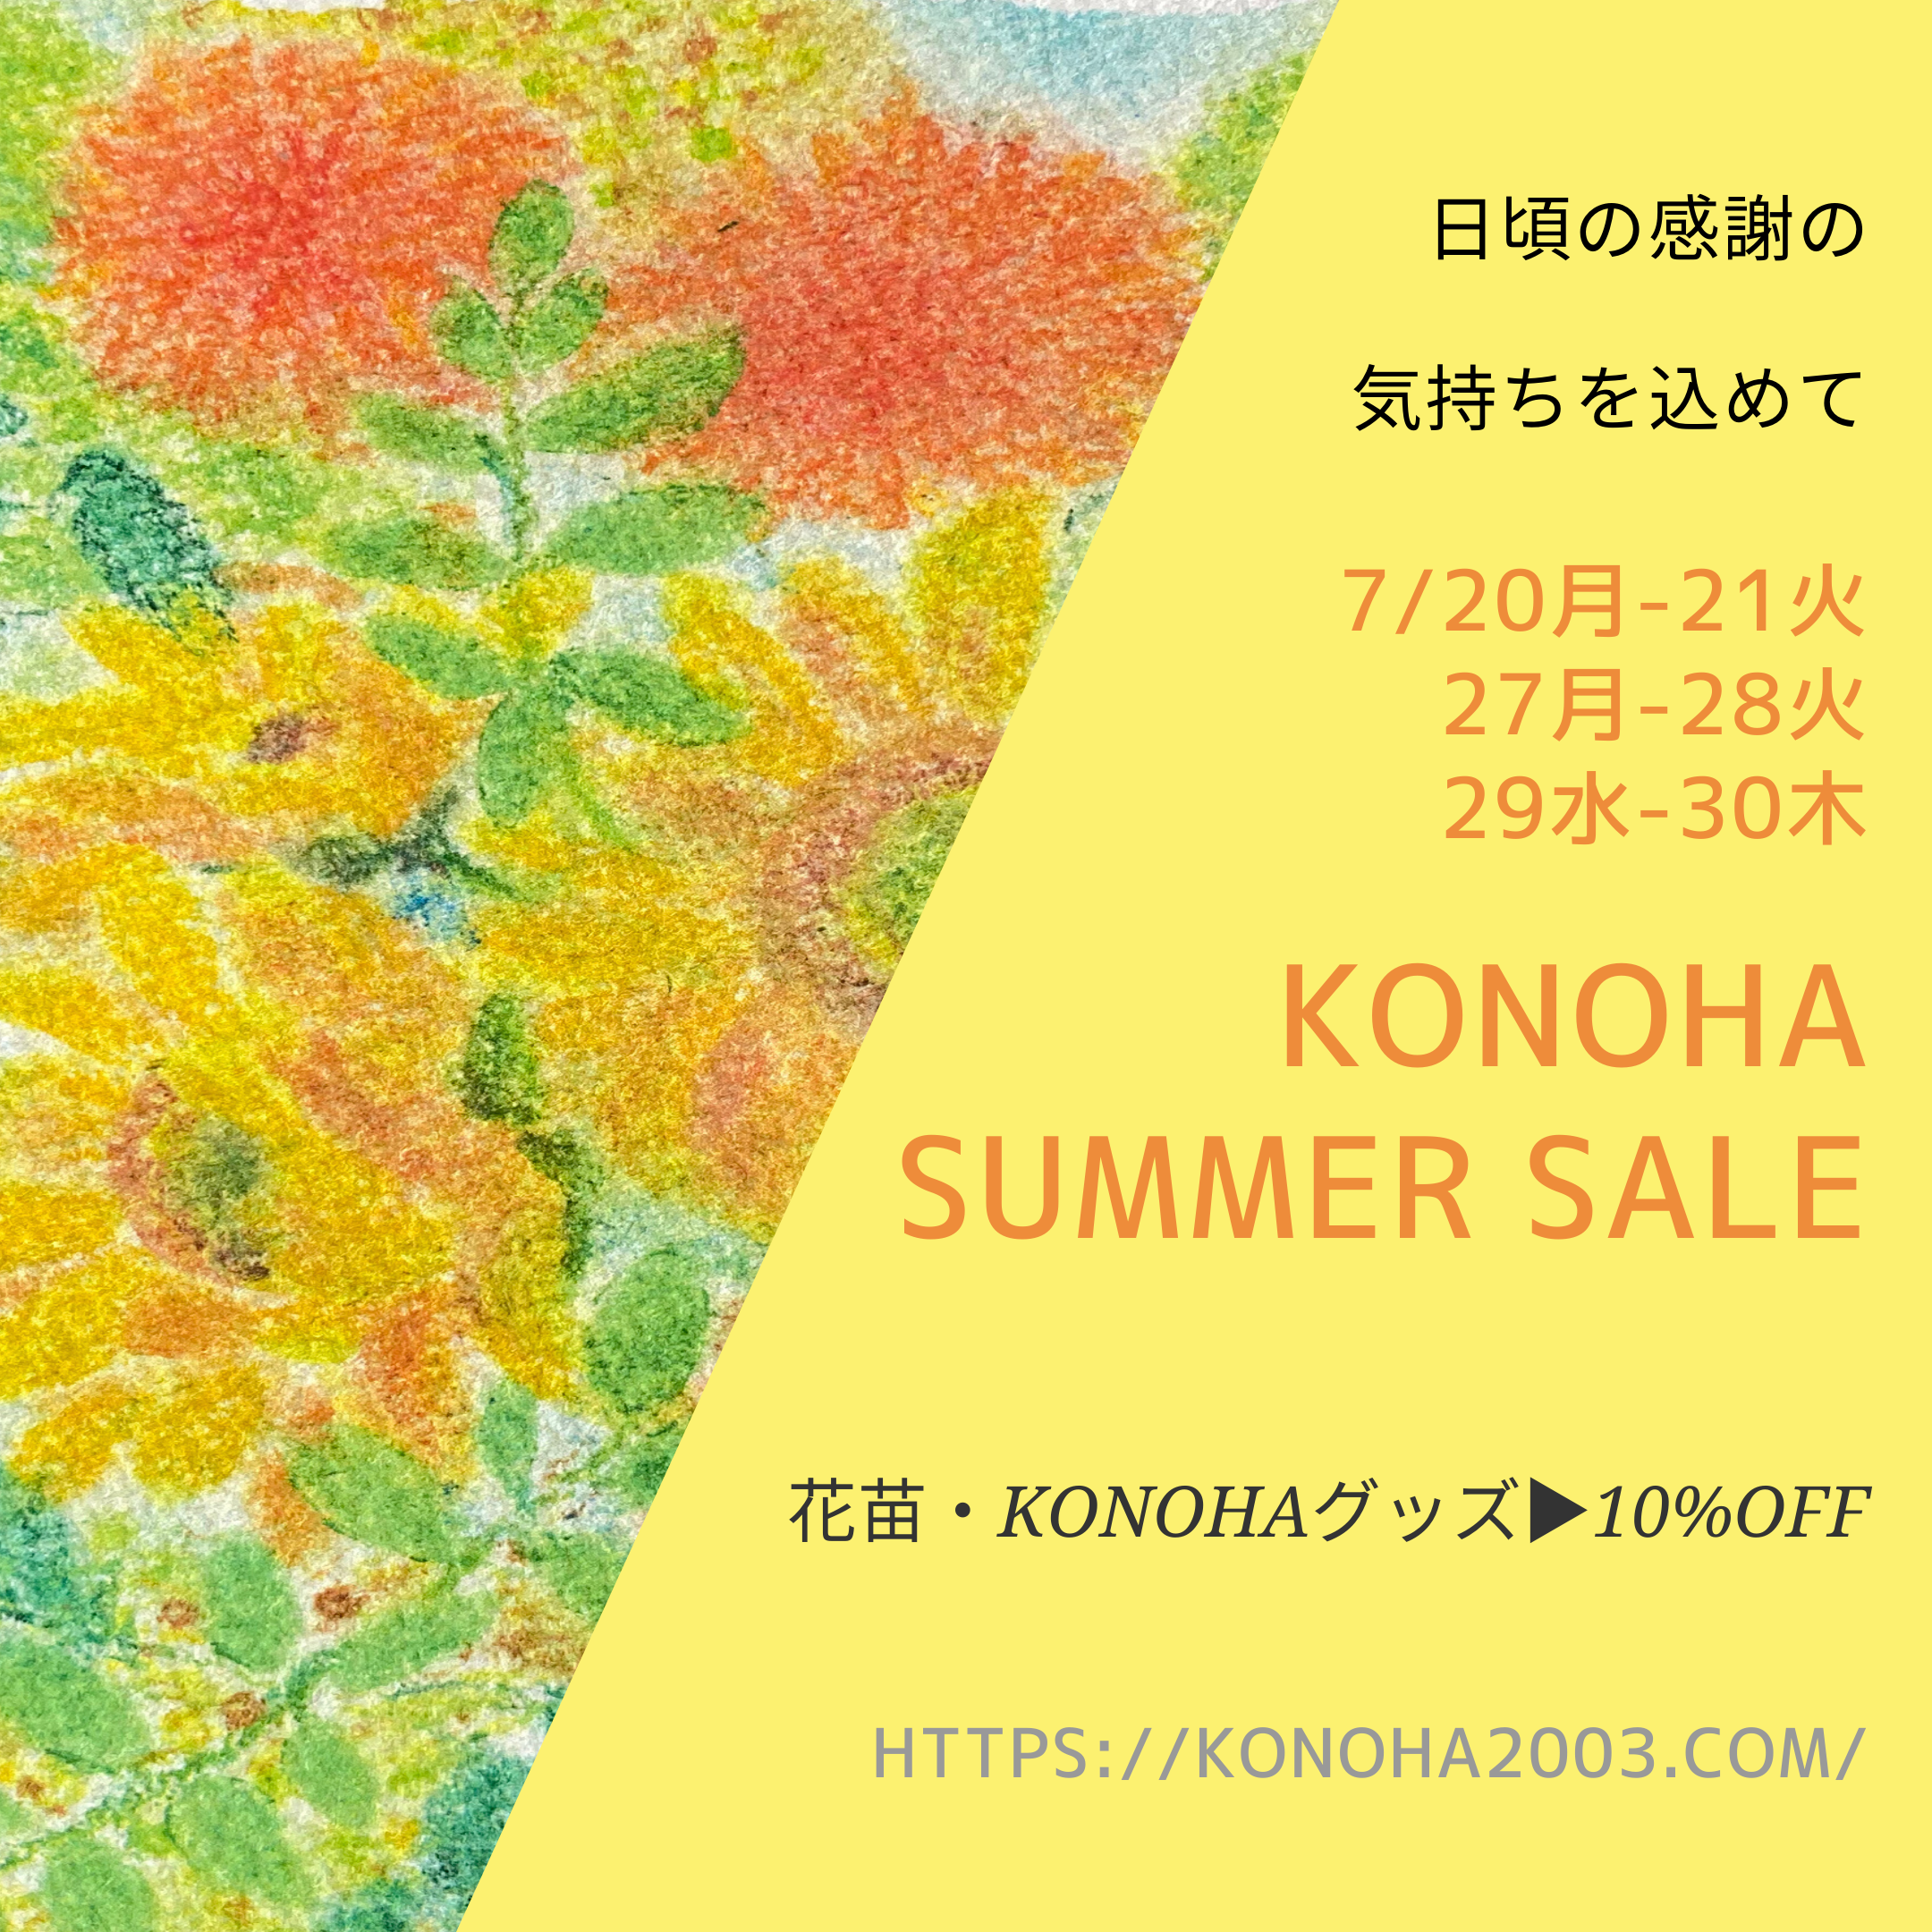 KONOHA ✽ SUMMER SALE ✽